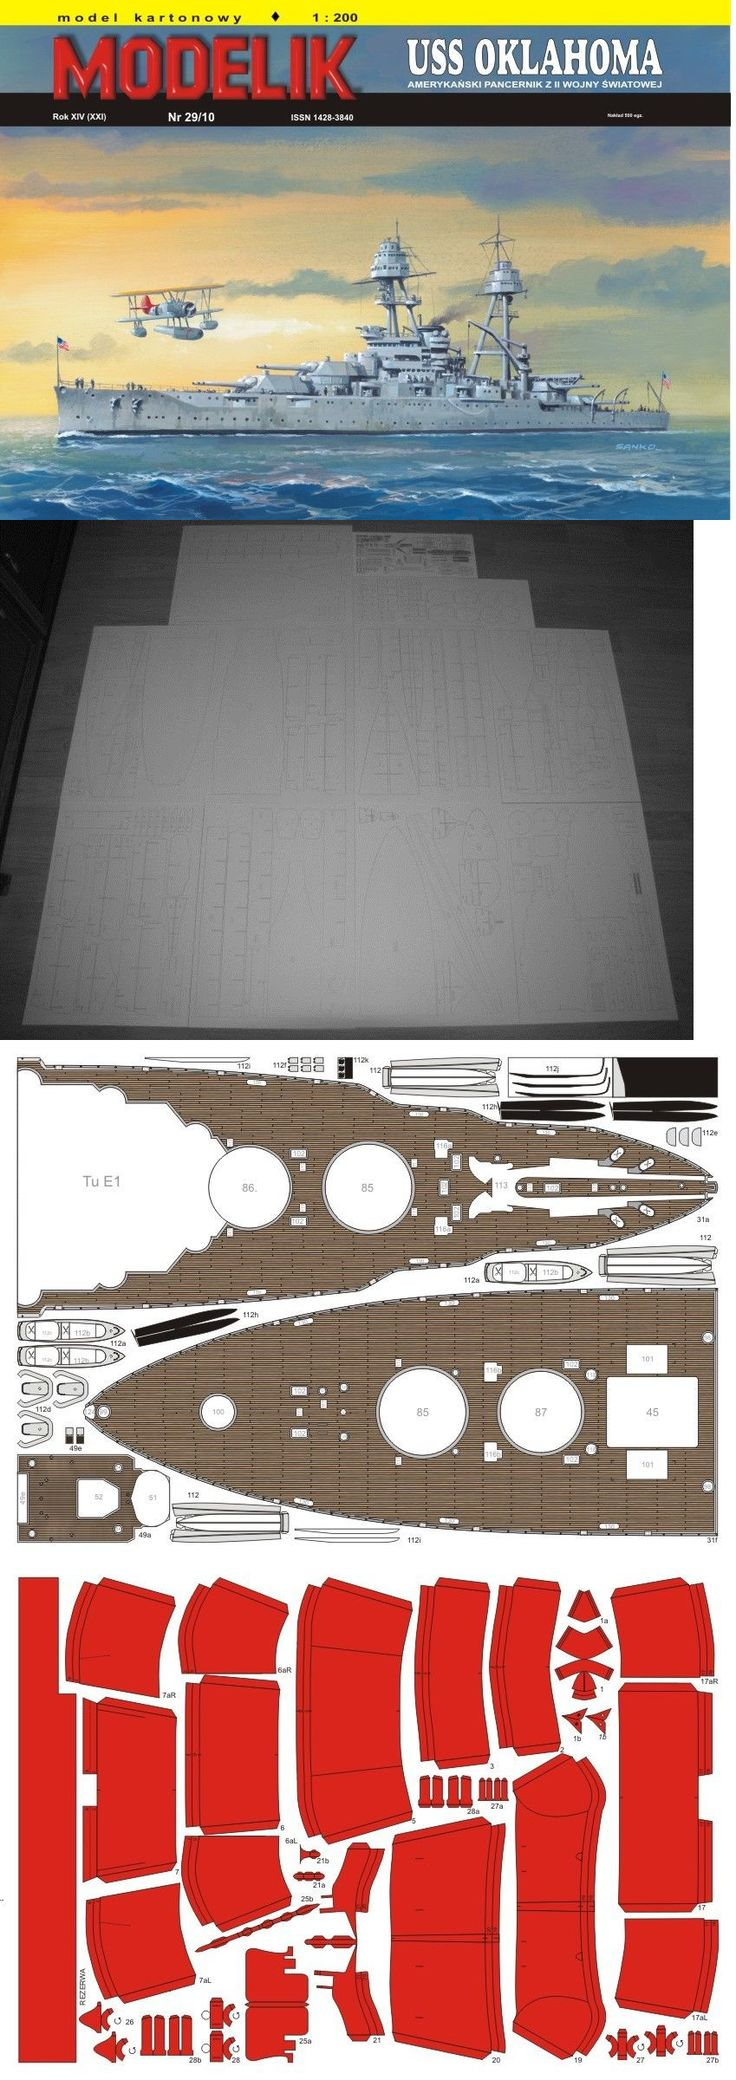 Other Boat Ship Models and Kits 4248: Uss Oklahoma Battleship Paper Cut Out Model Scale 1:200 + Laser Parts -> BUY IT NOW ONLY: $53.99 on eBay!